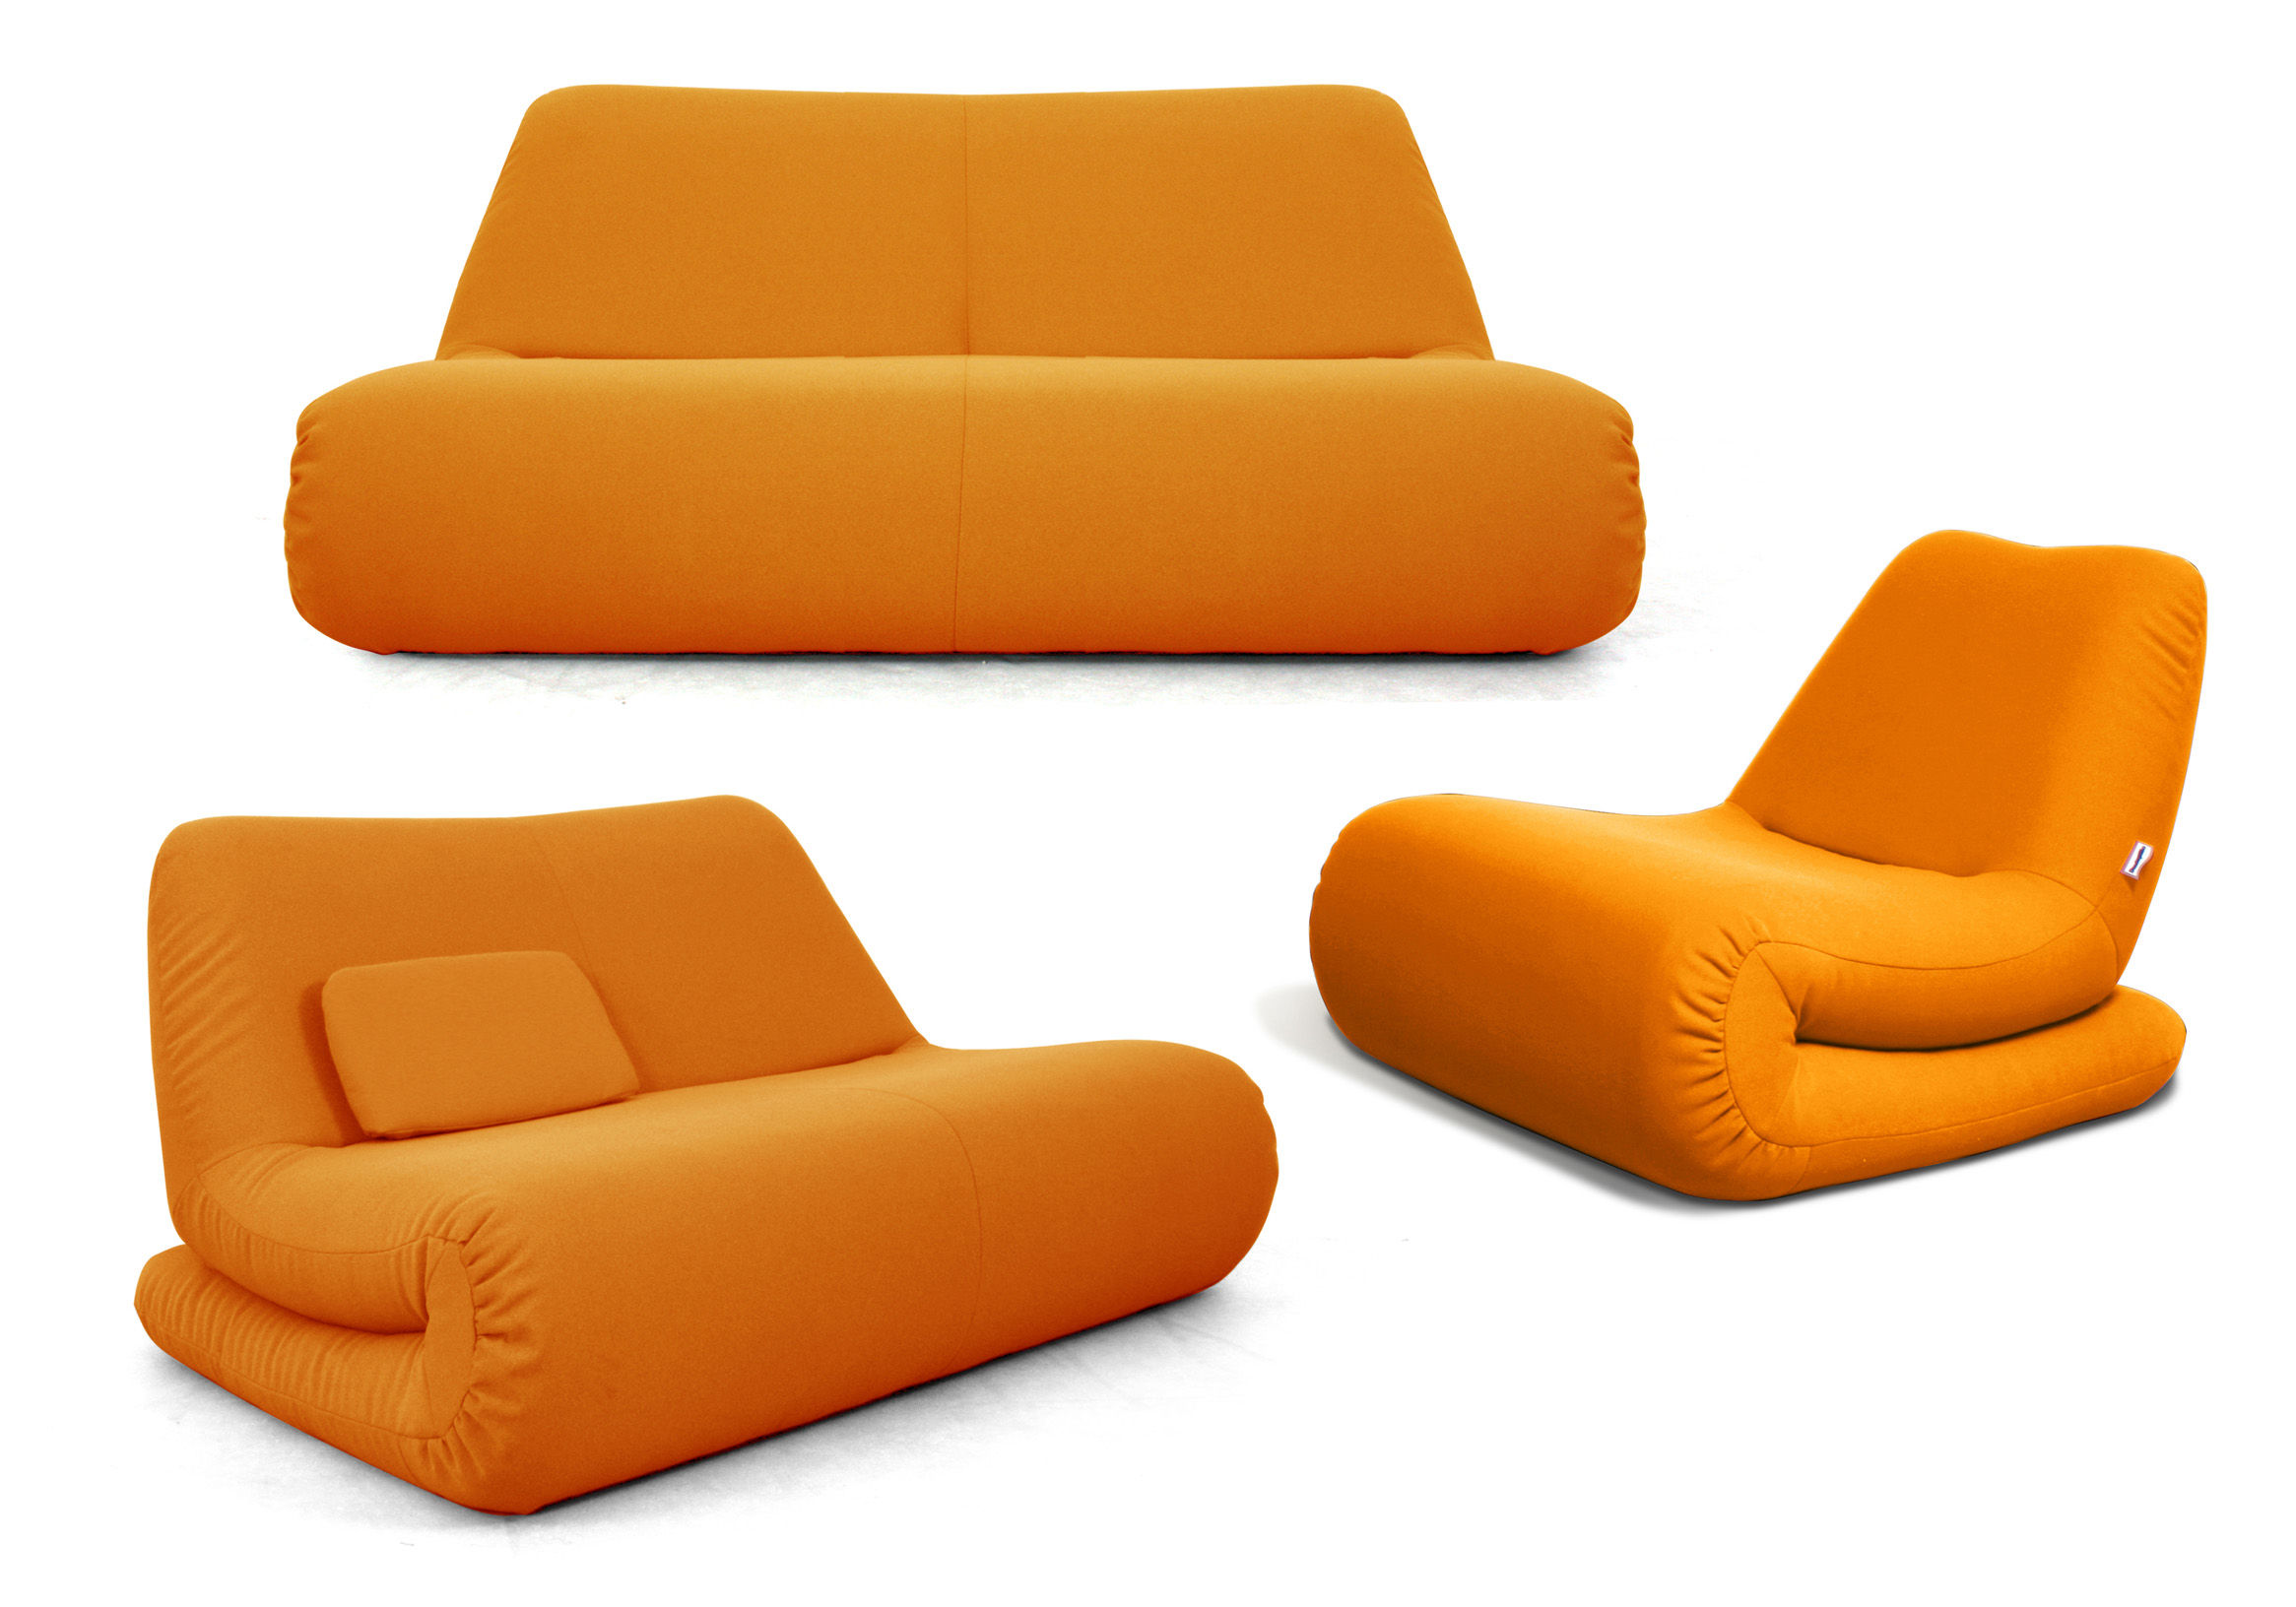 Canap droit zig zag boby 2 places l 152 cm orange dunlopillo - Vente privee dunlopillo ...